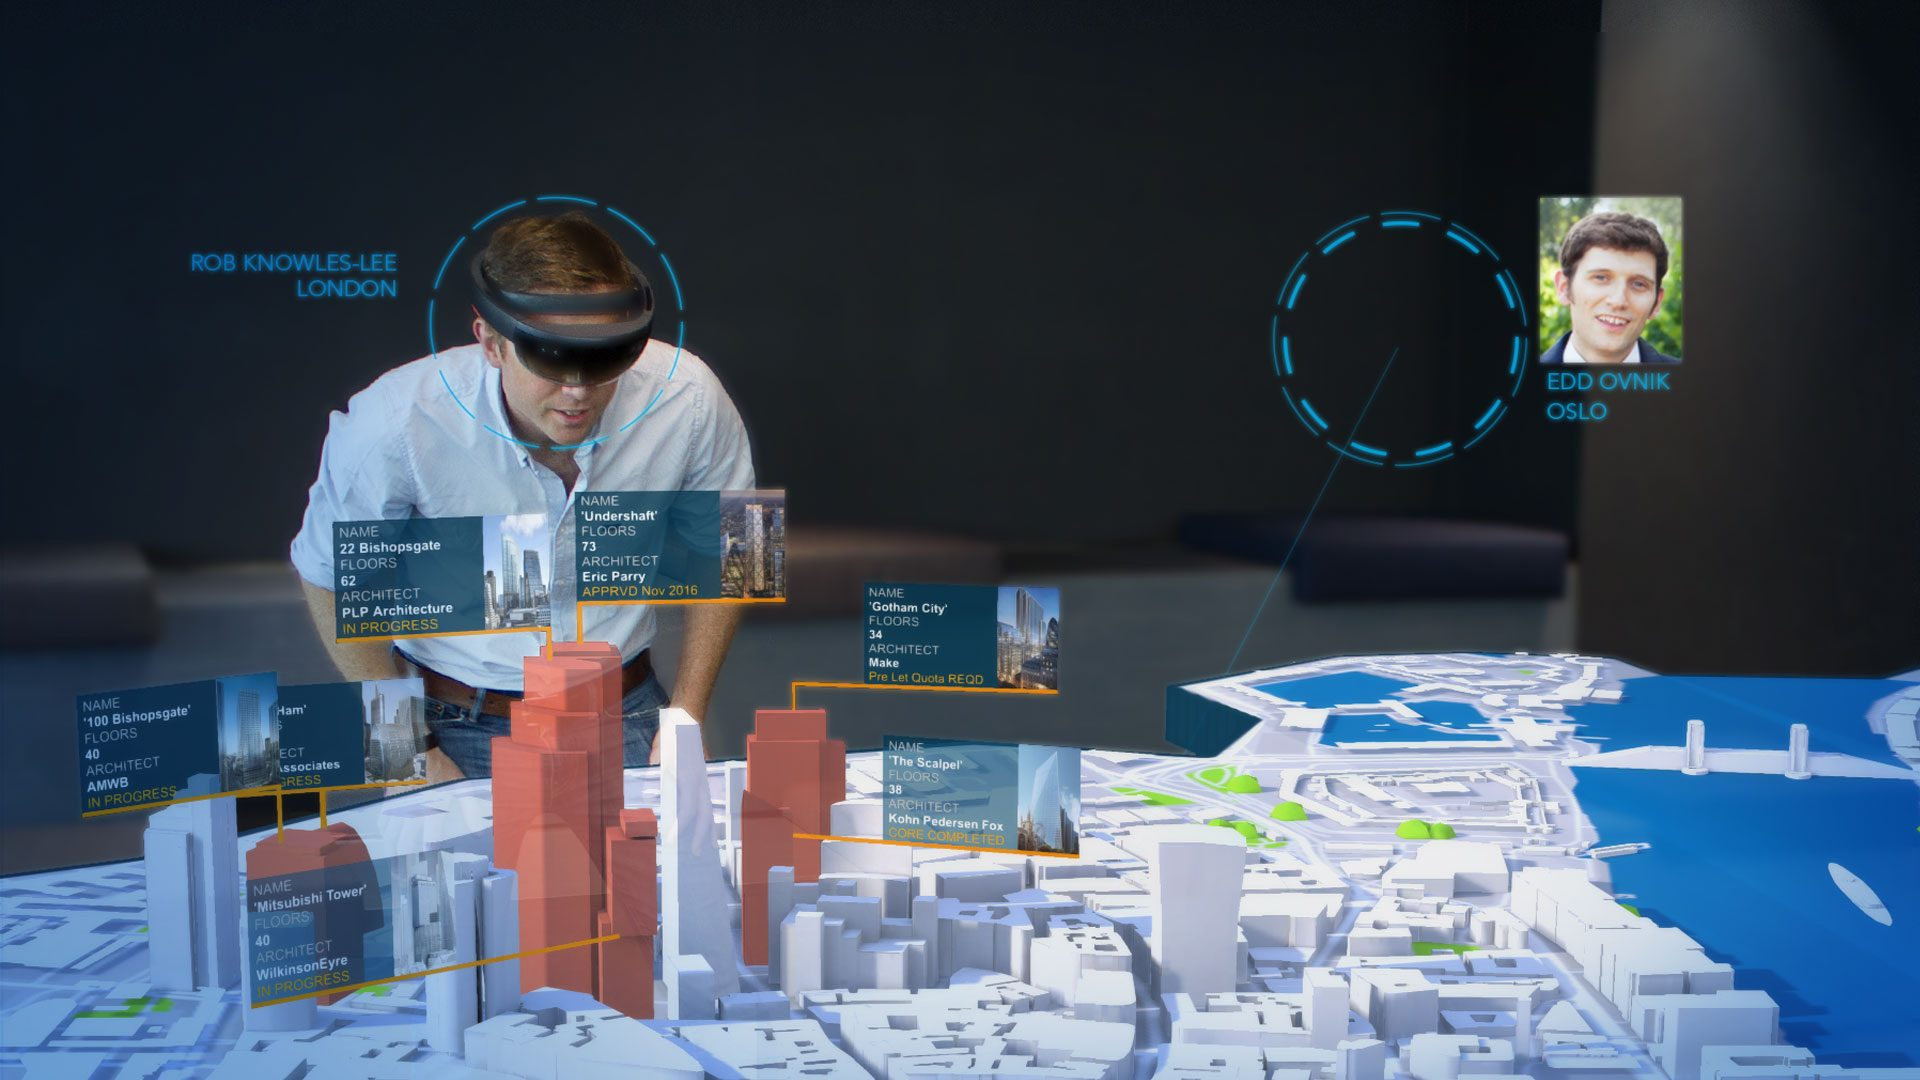 london data viz hololens